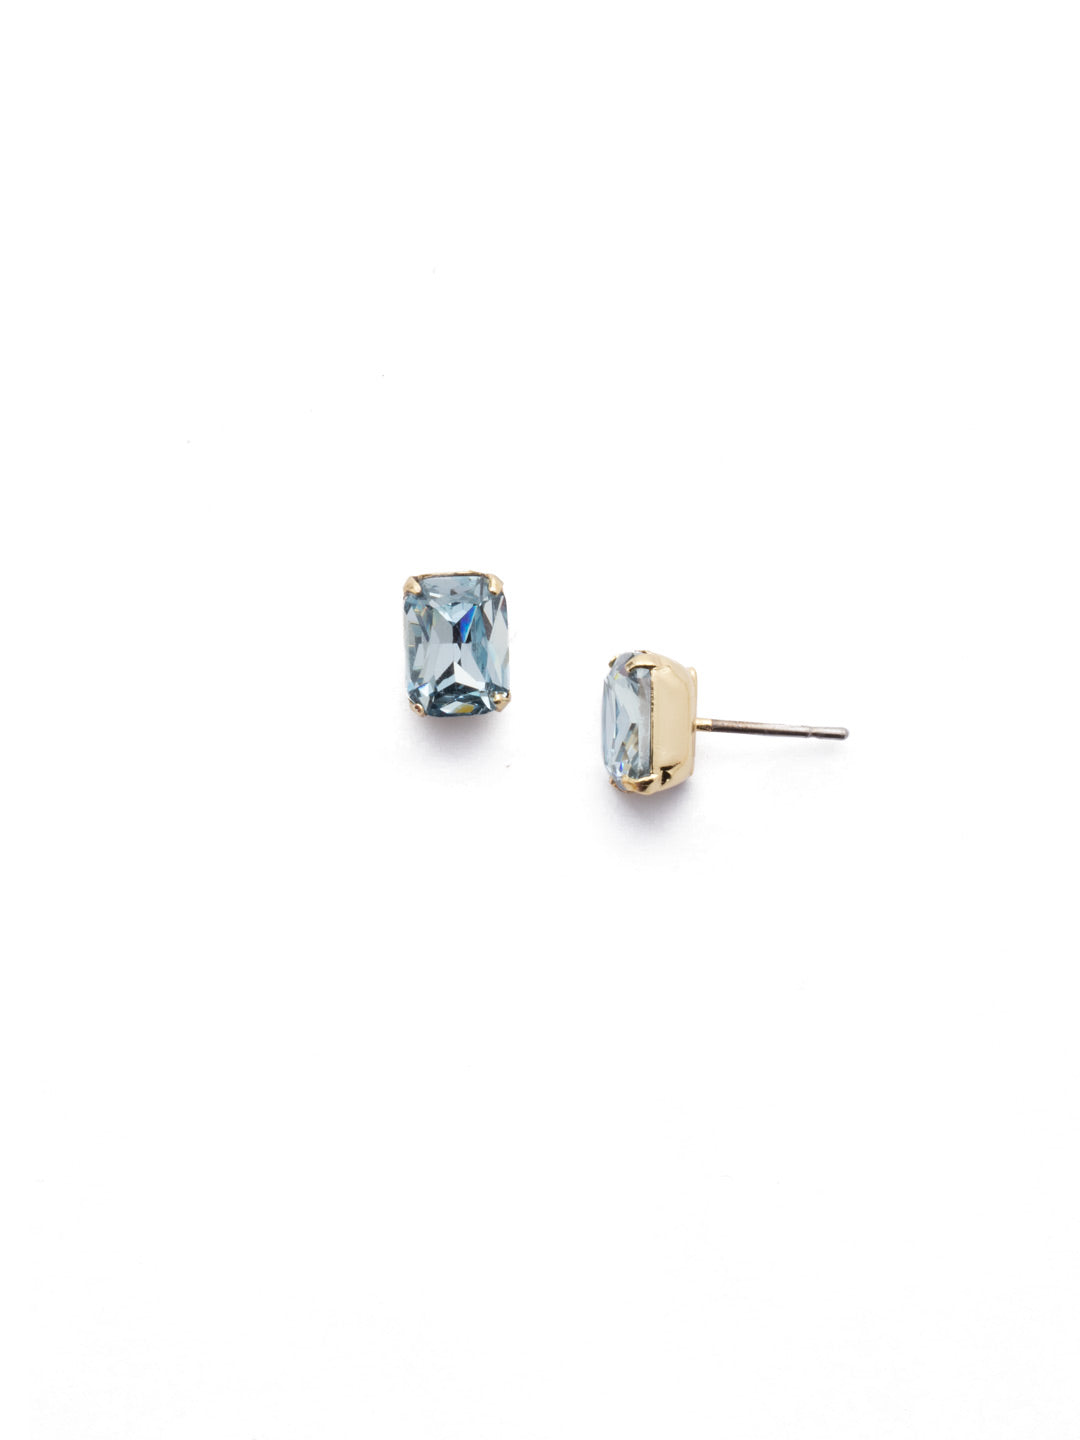 Mini Emerald Cut Stud Earrings - EBY42BGLAQ